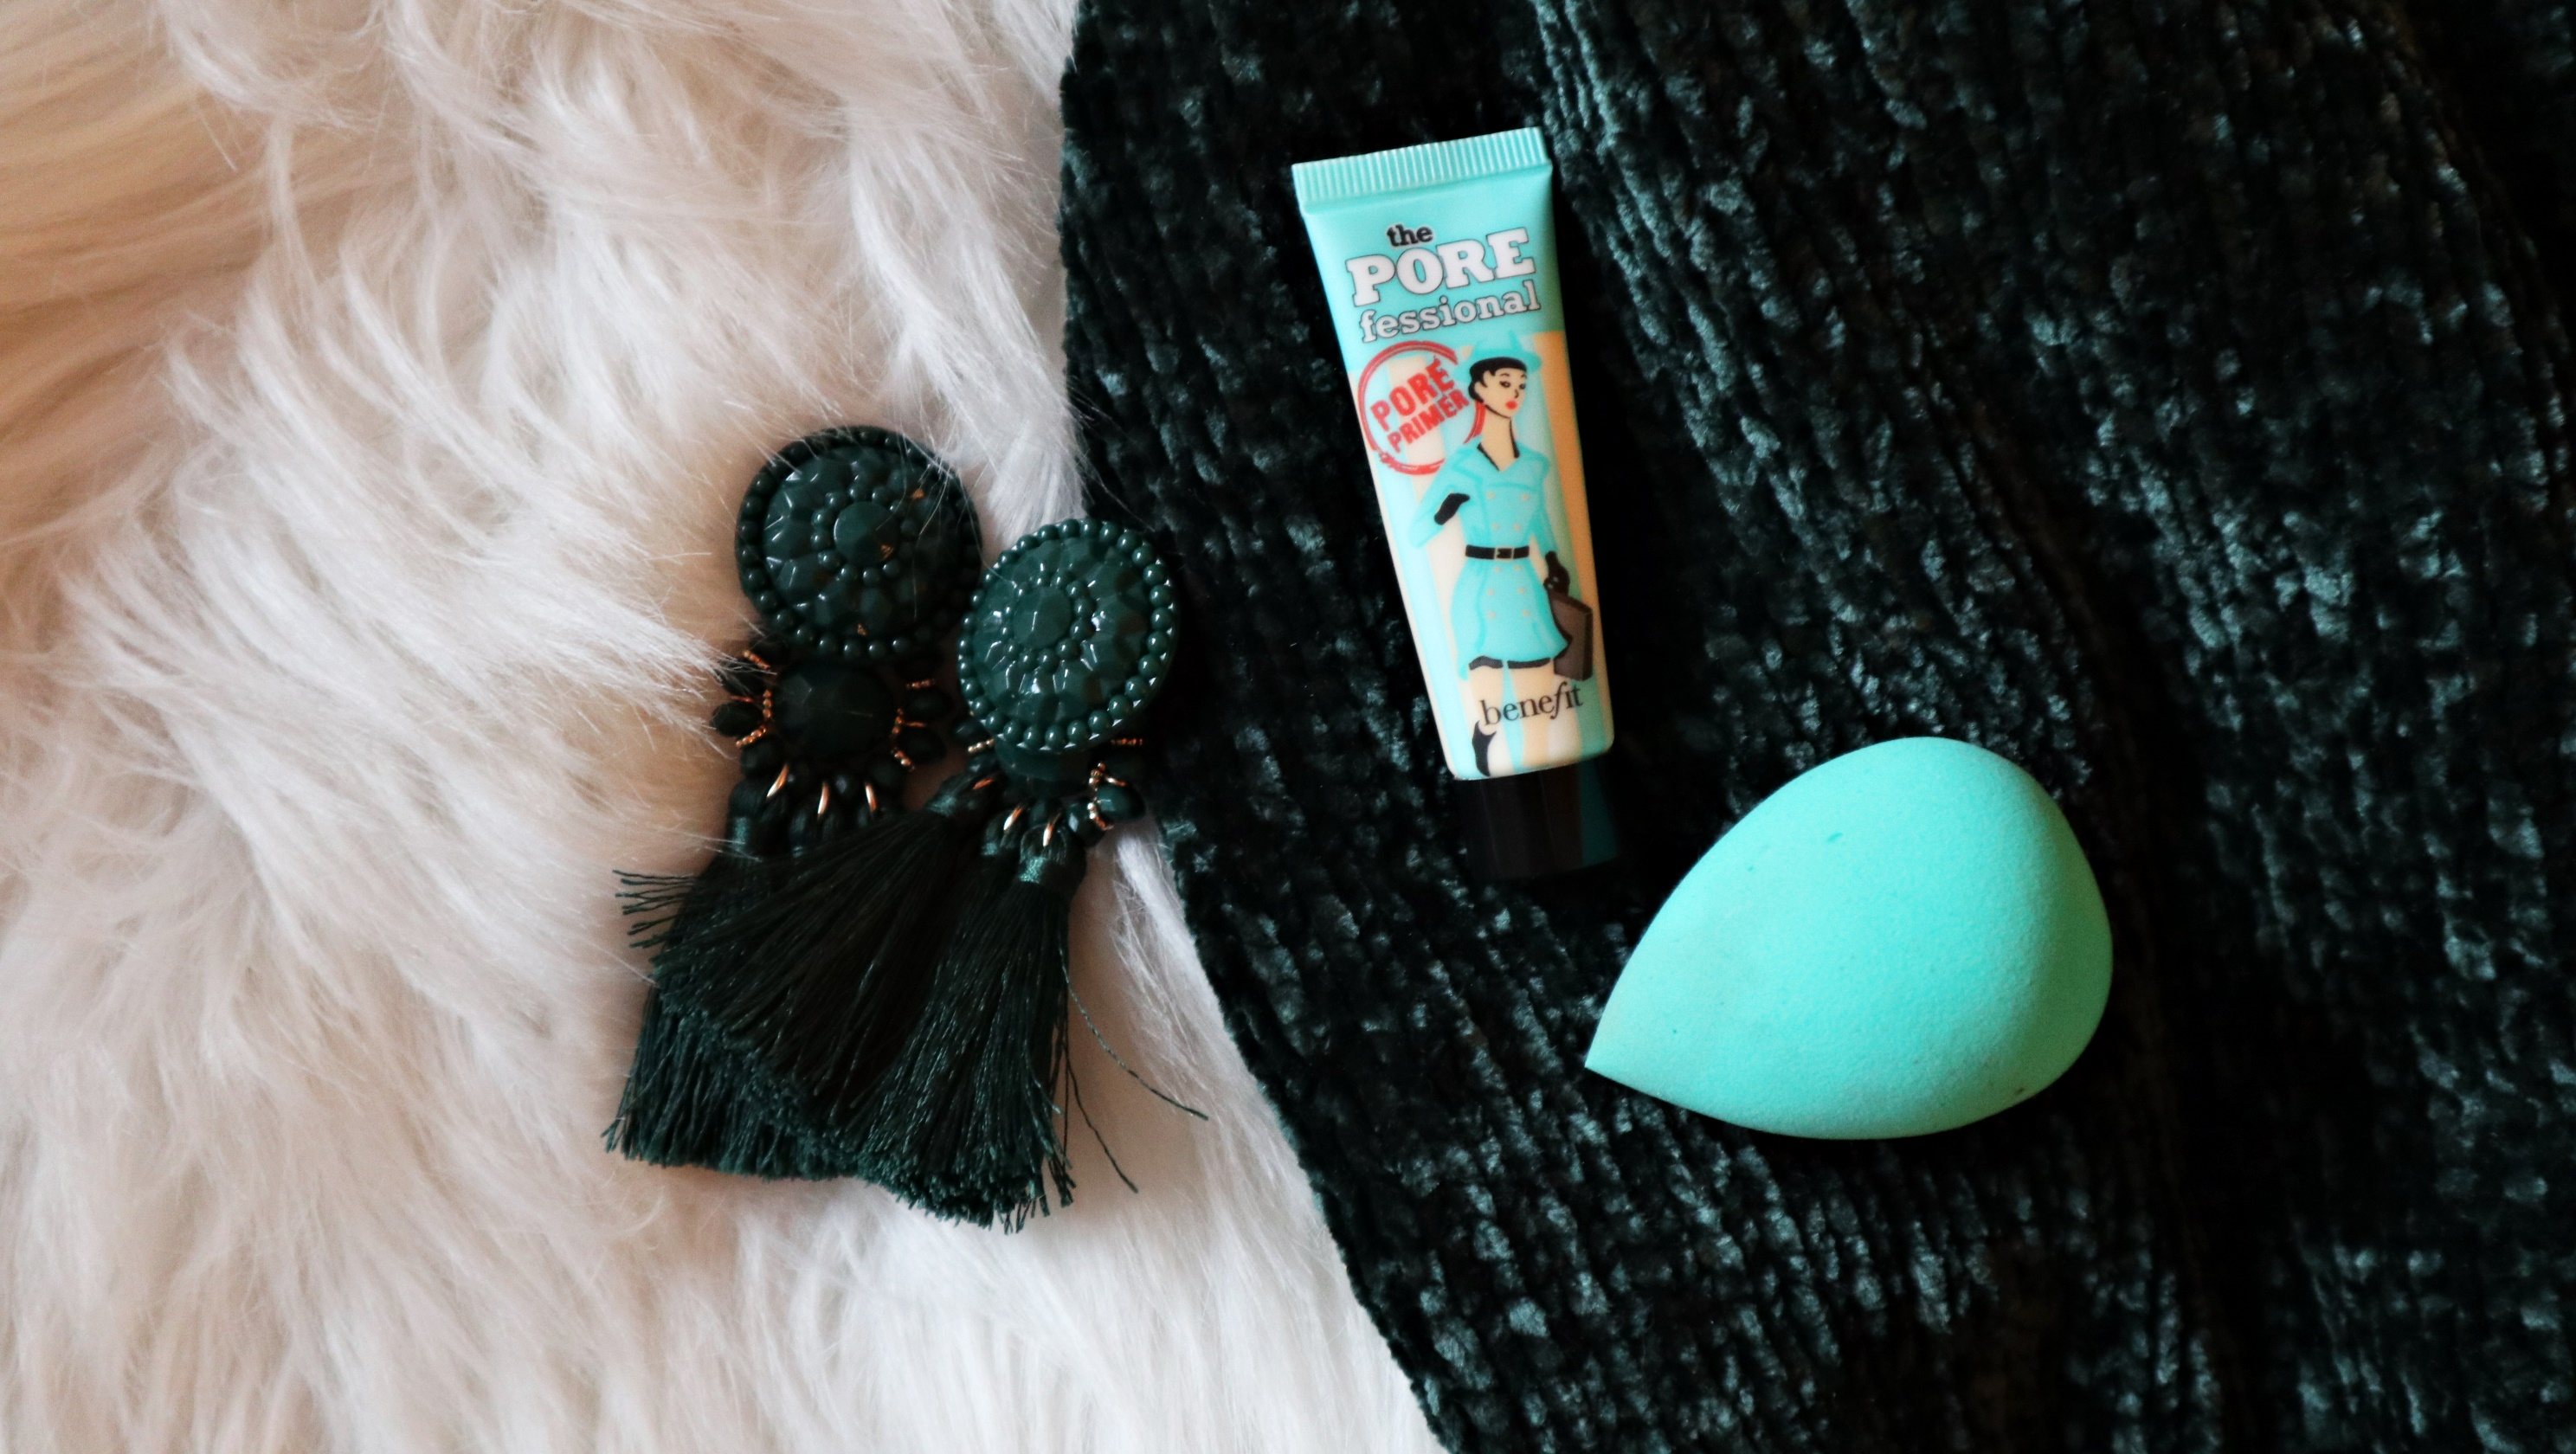 The Porefessional smoothing pore primer de la Benefit